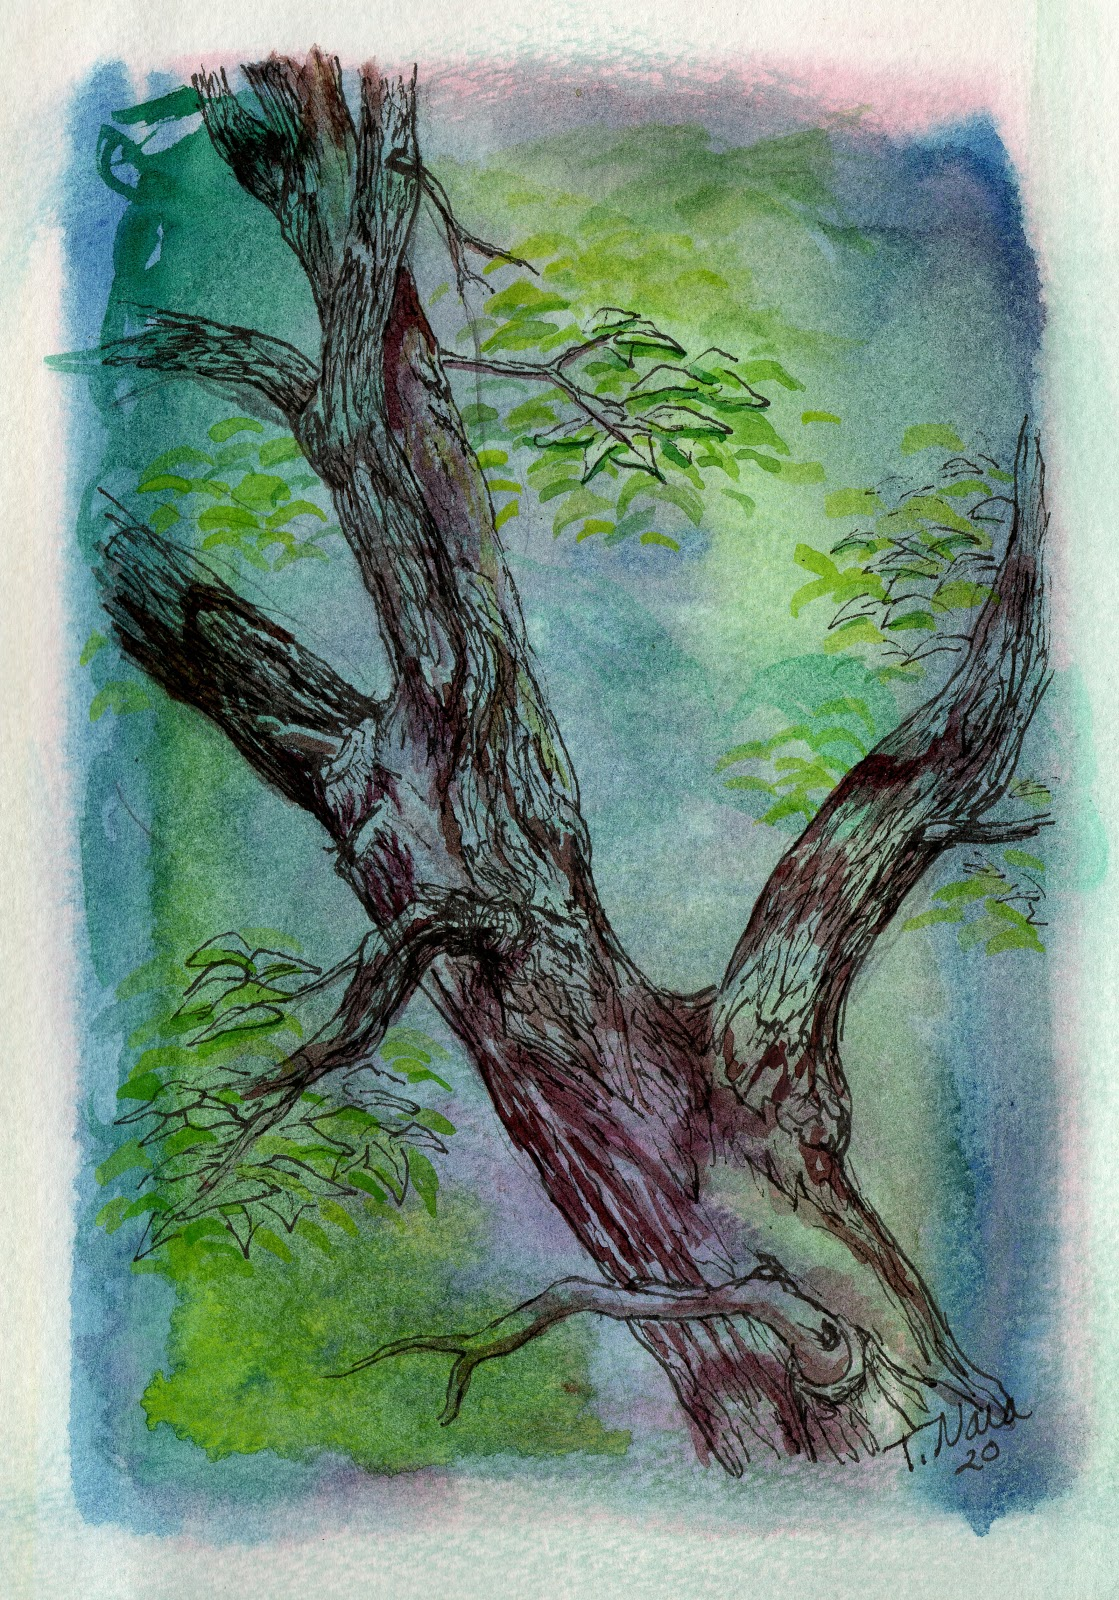 Painting of a tree trunk with some dead branches